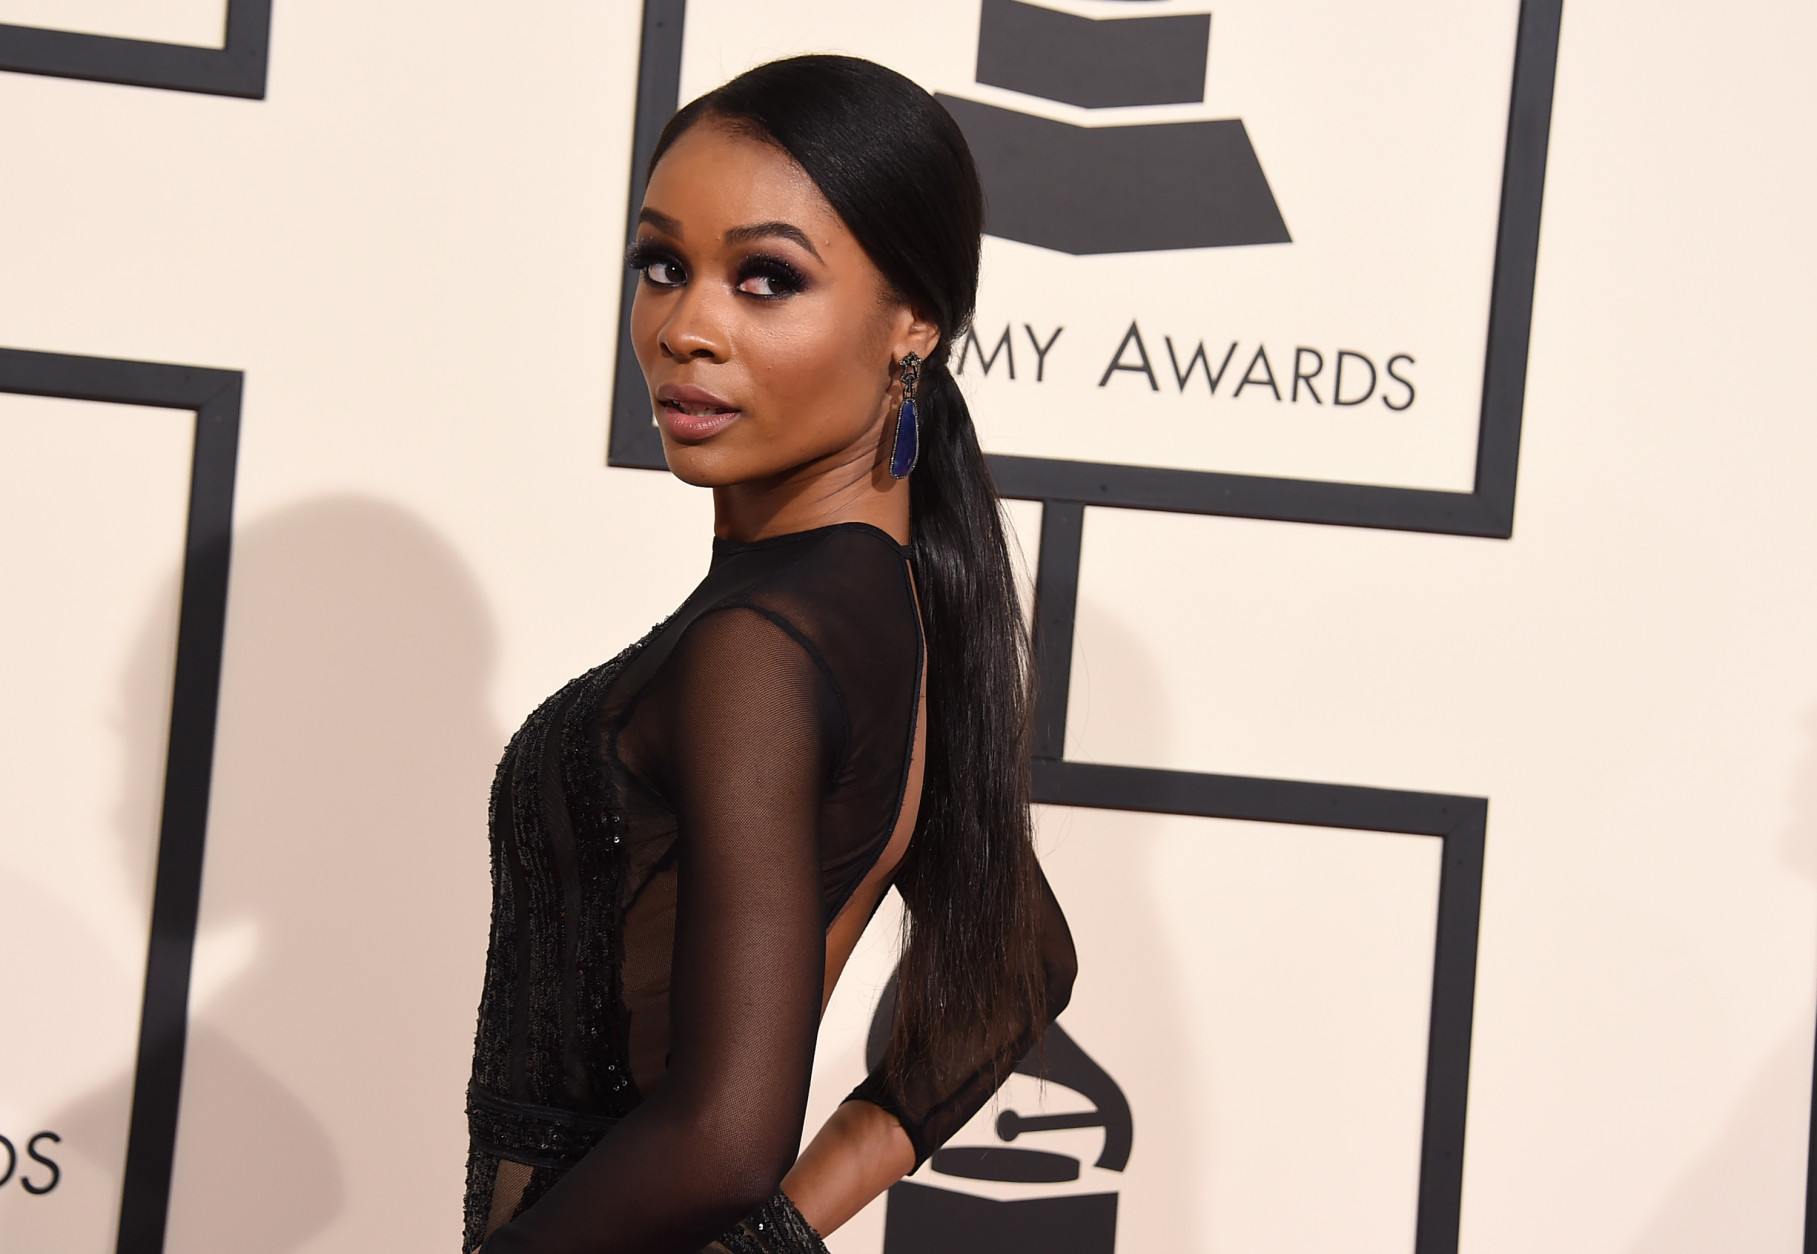 Zuri Hall arrives at the 58th annual Grammy Awards at the Staples Center on Monday, Feb. 15, 2016, in Los Angeles. (Photo by Jordan Strauss/Invision/AP)